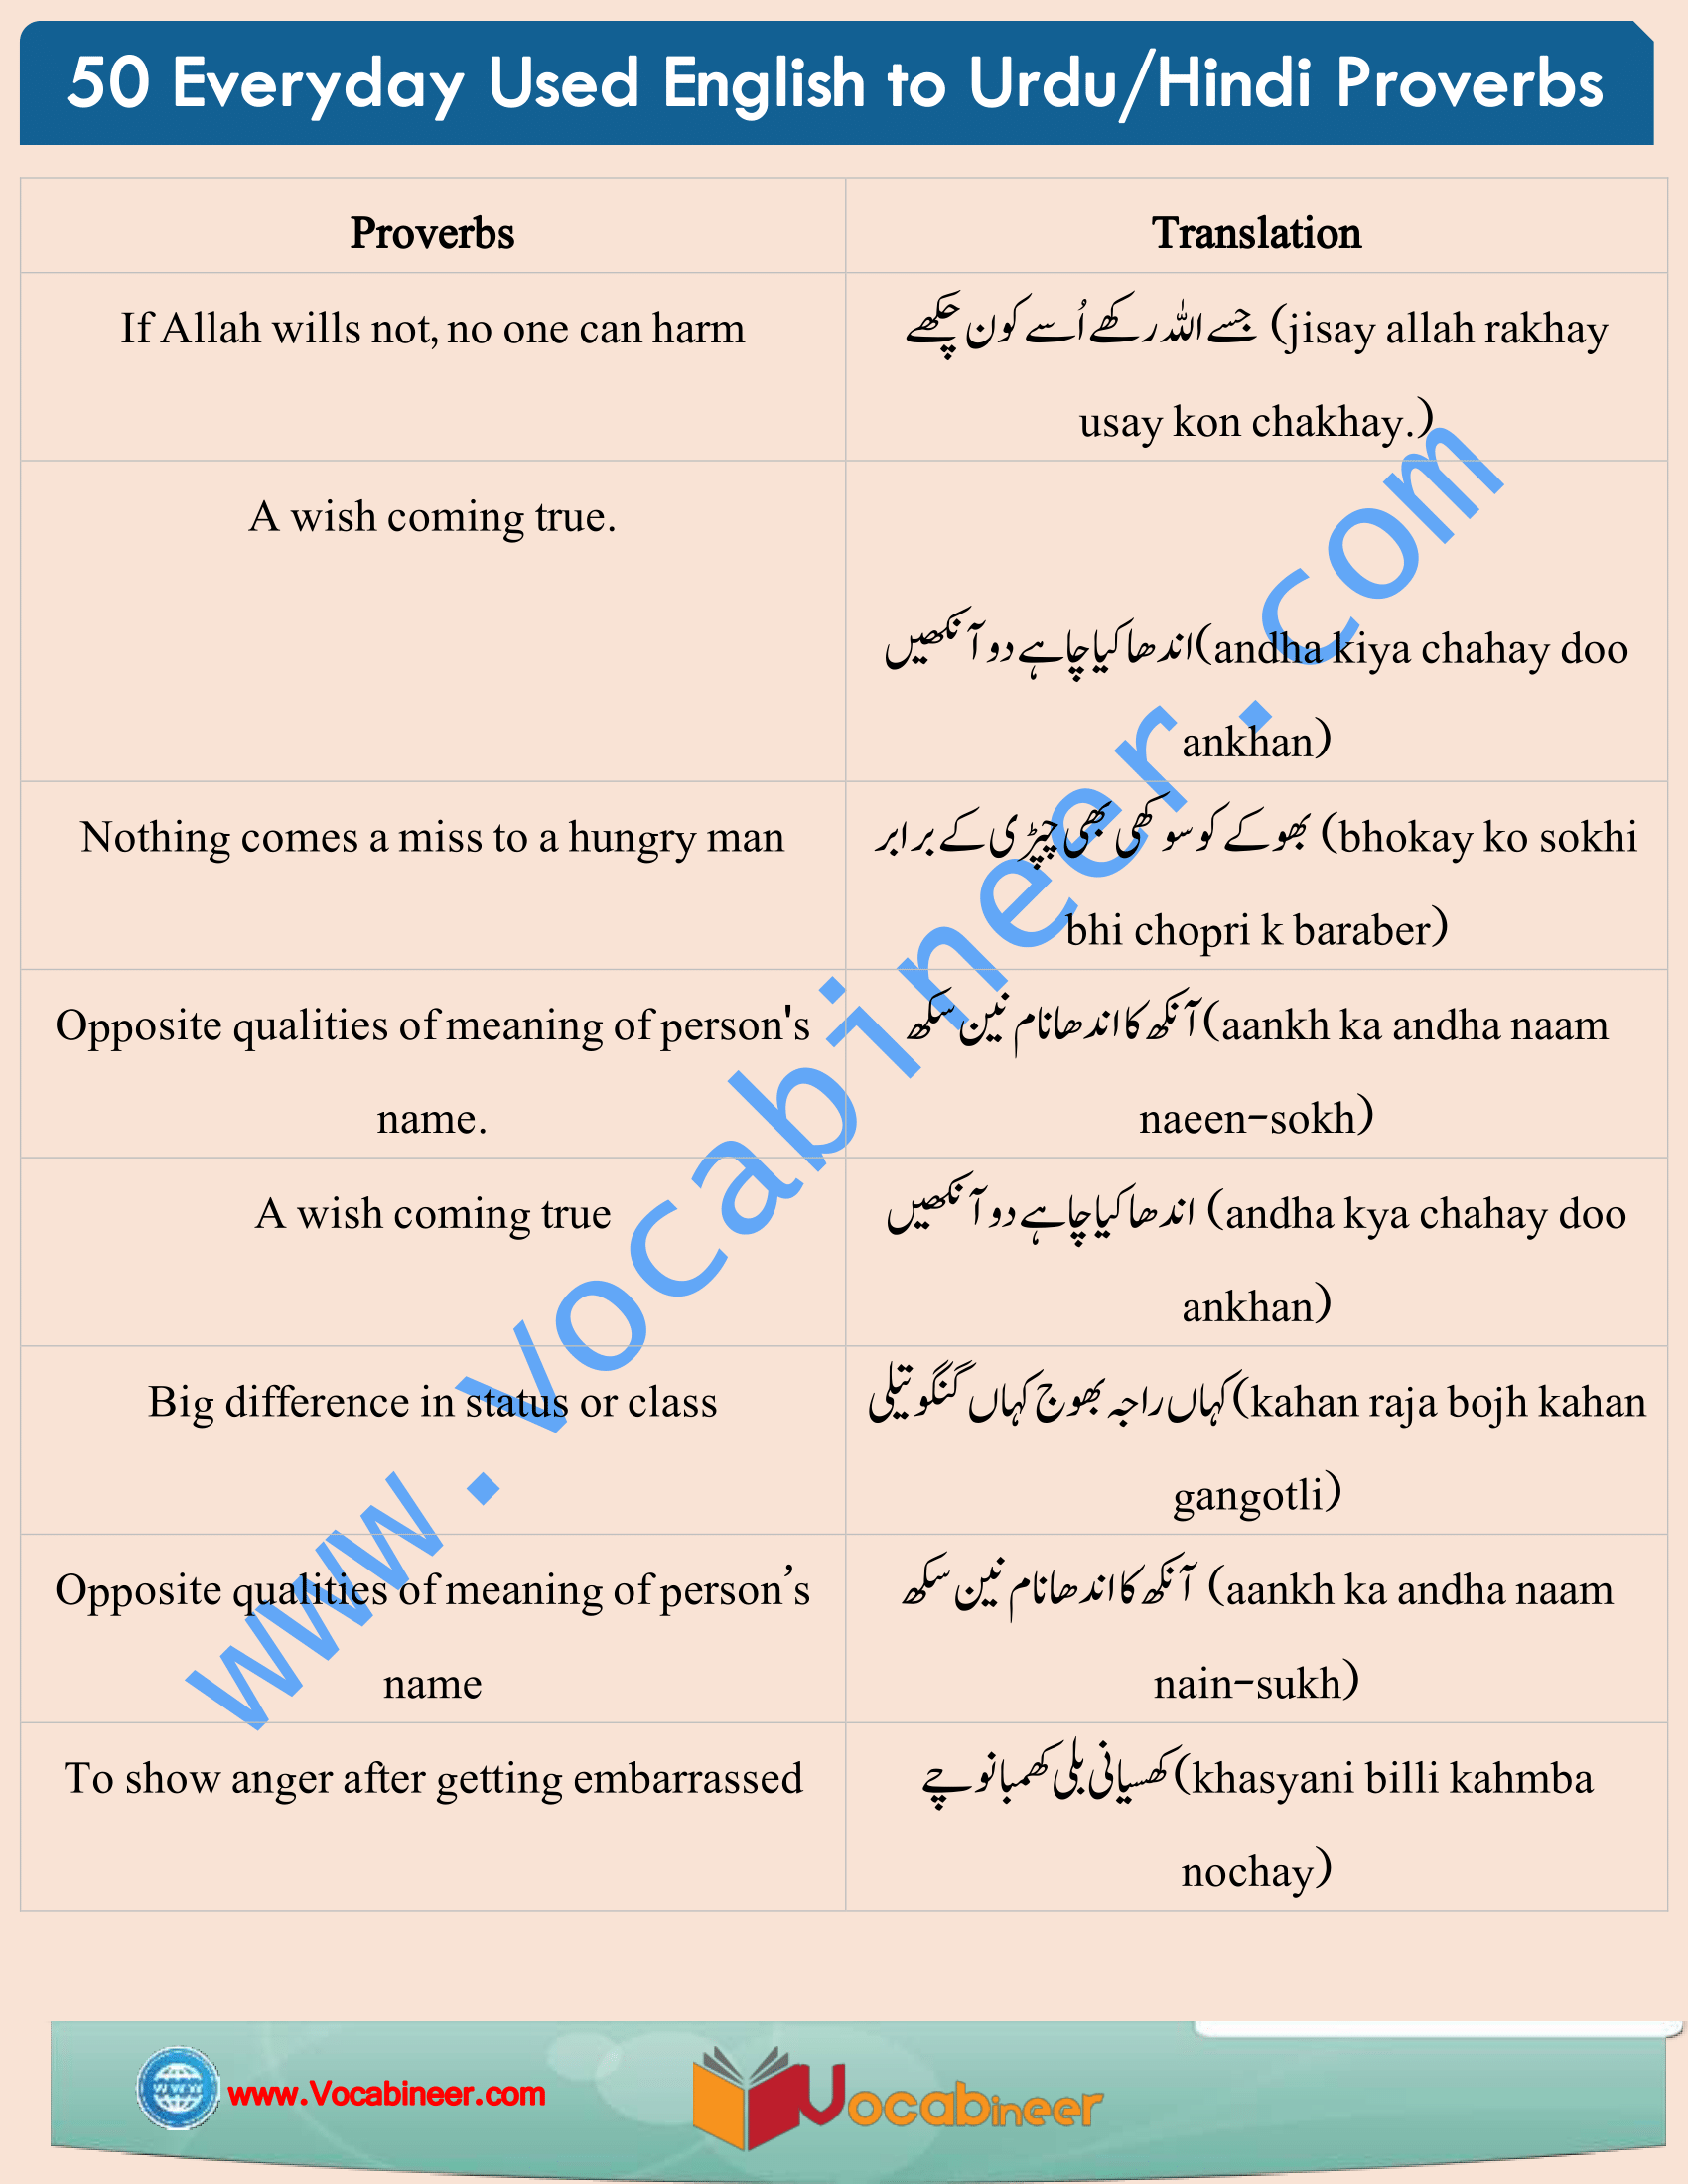 Proverbs Eng To Urdu